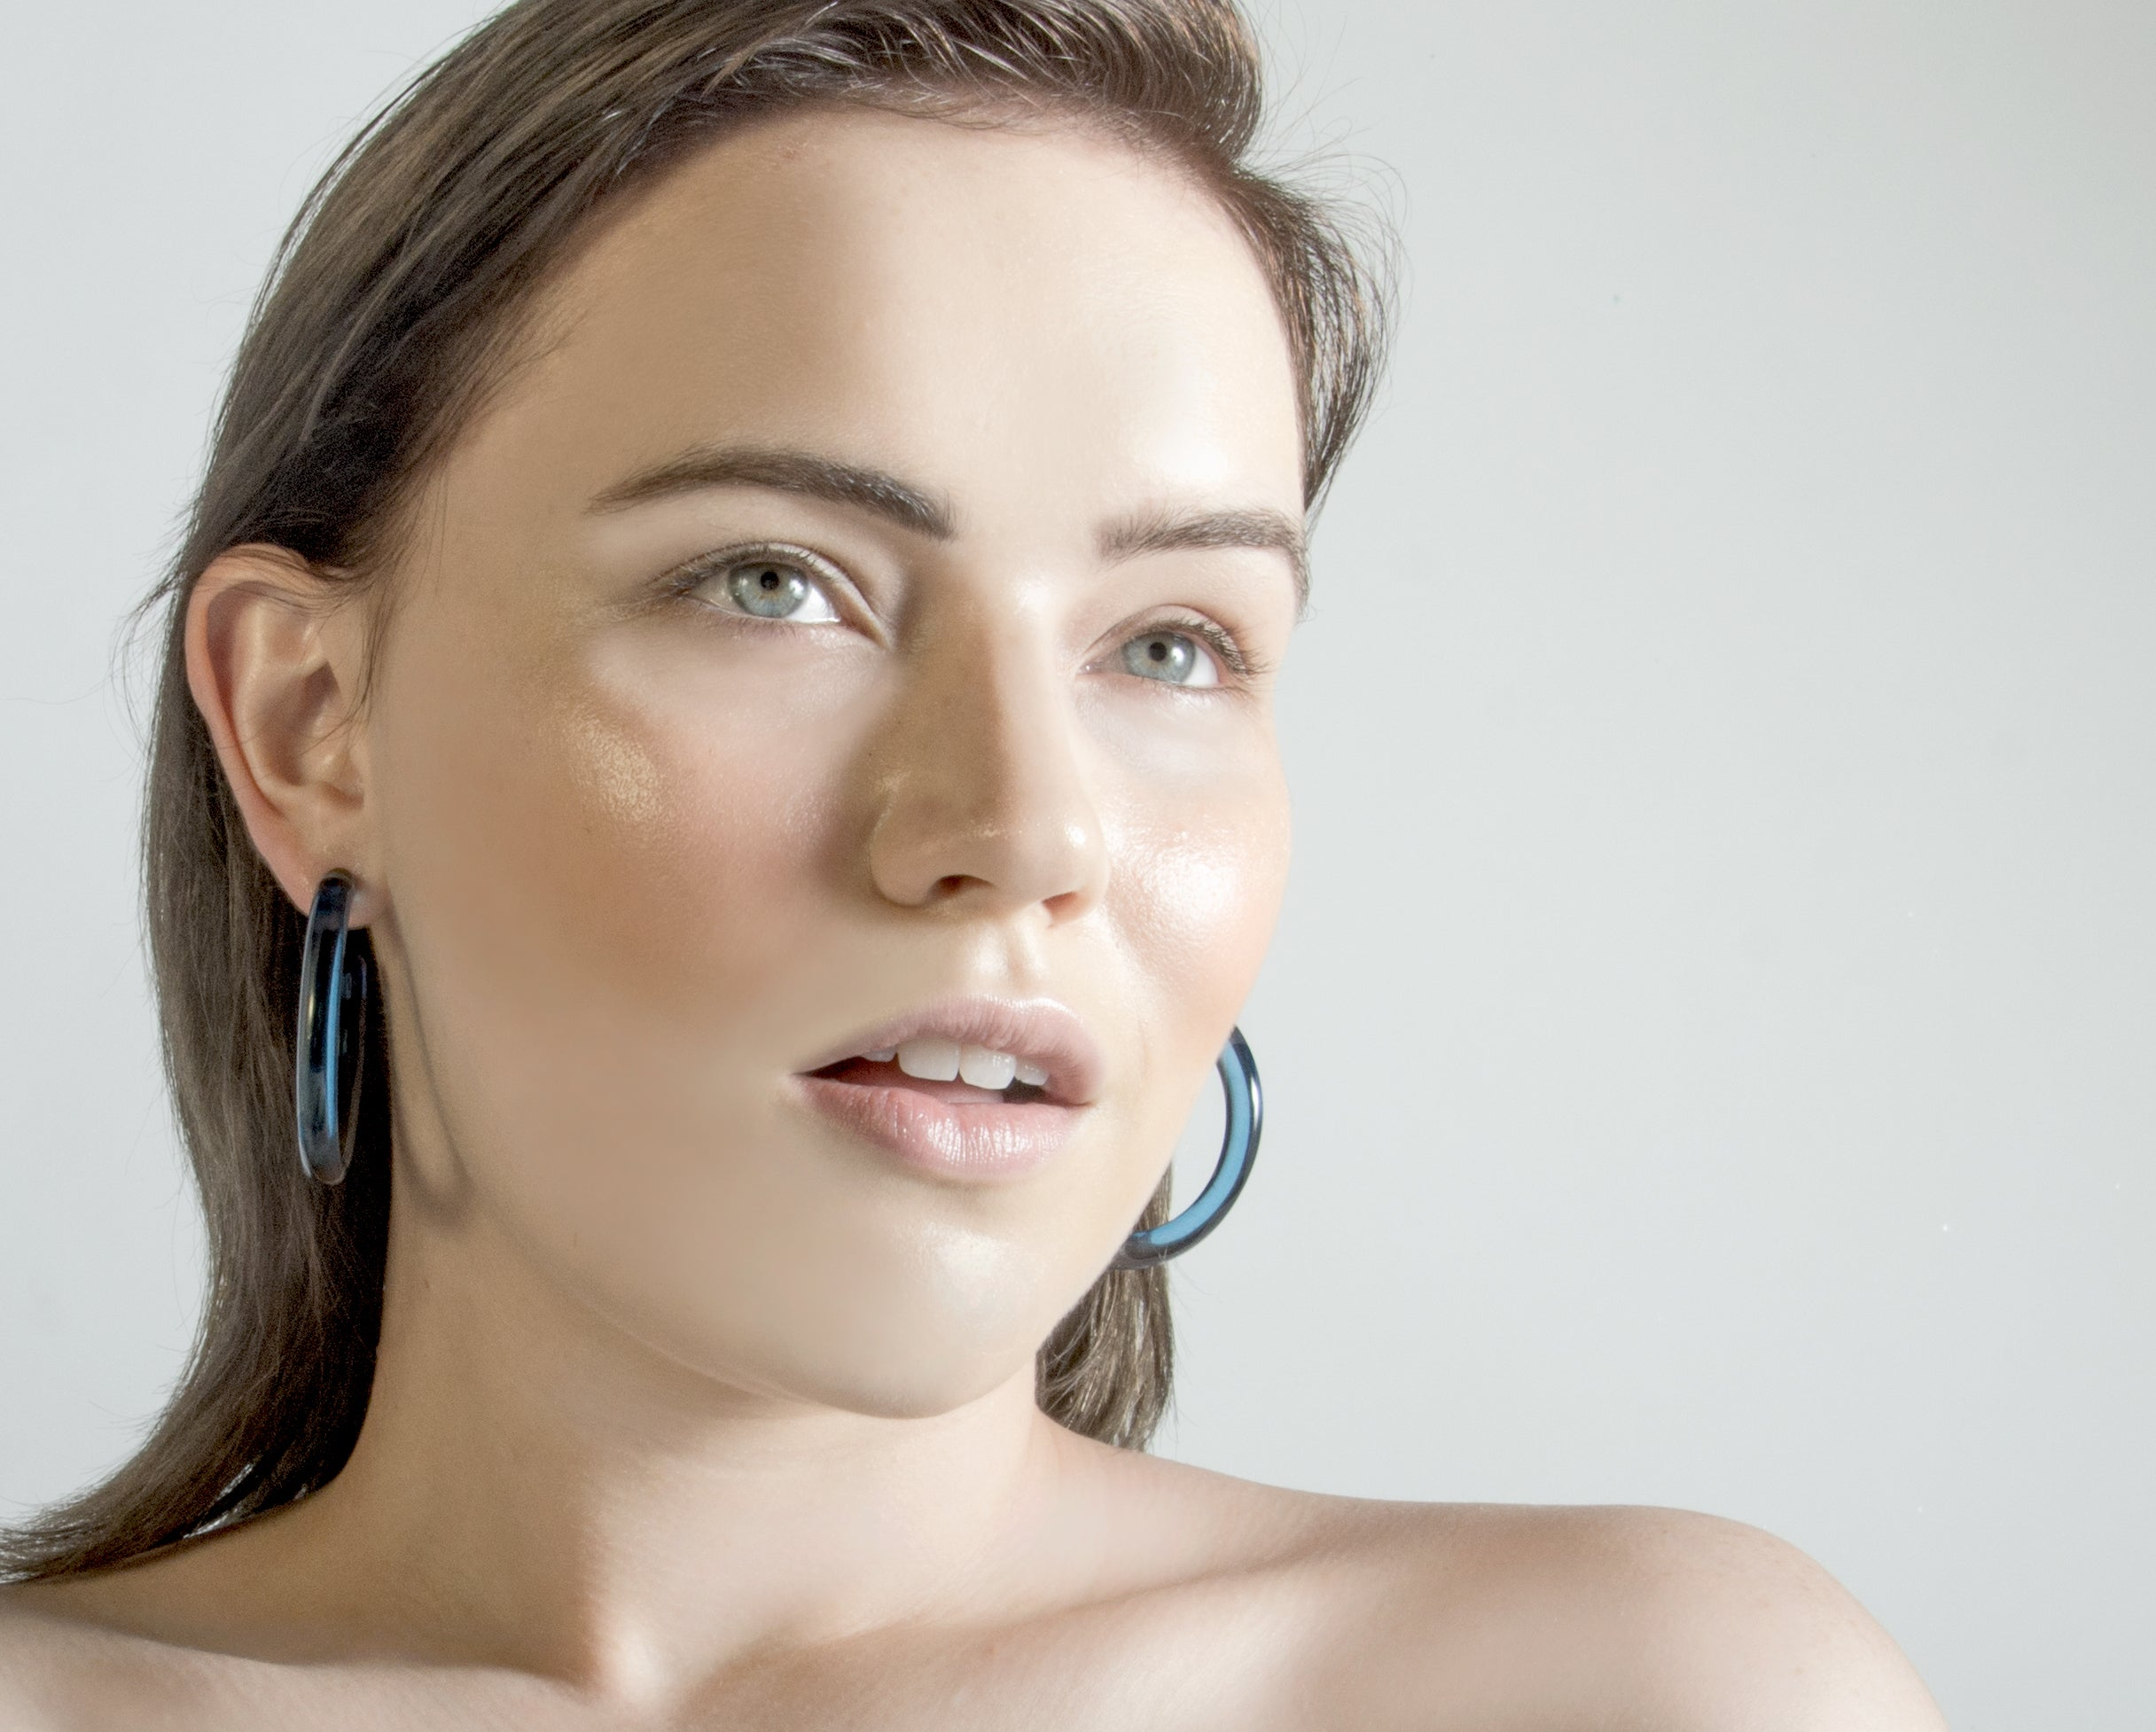 2 Inch Lucite Hoop Earrings in Lapis